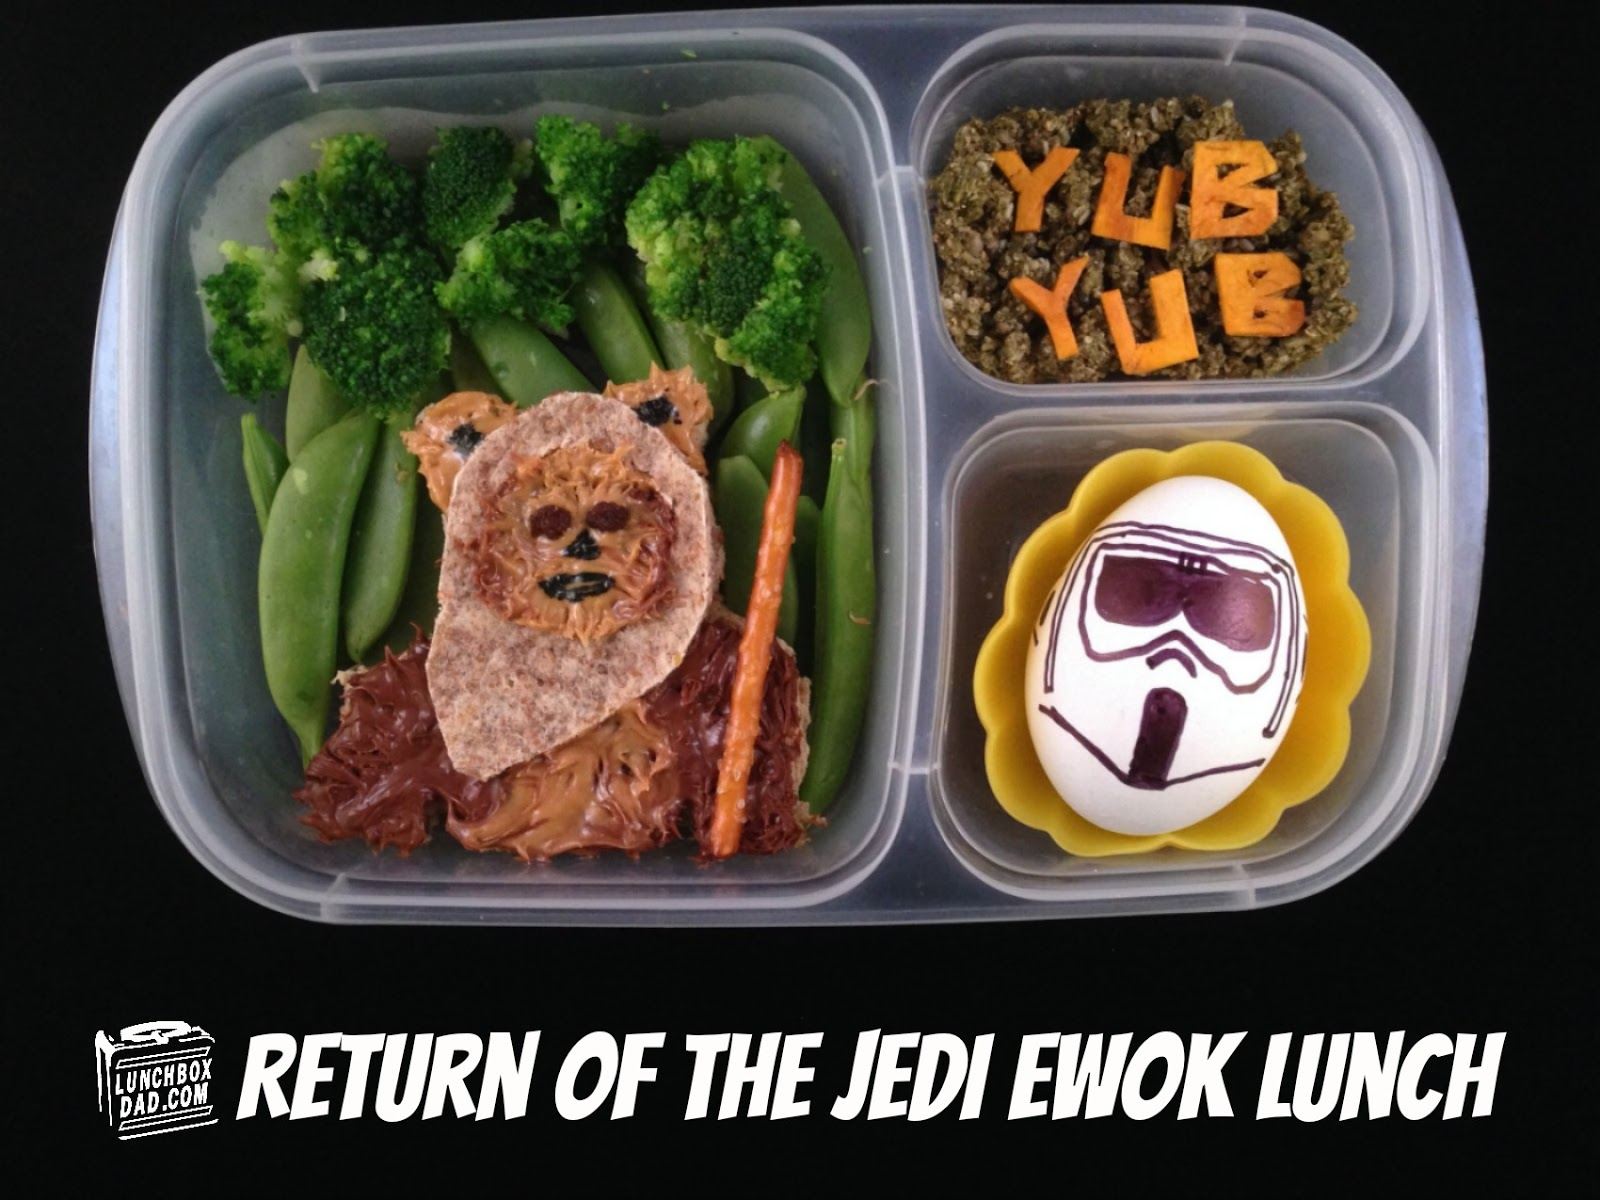 Star Wars Ewok Lunch